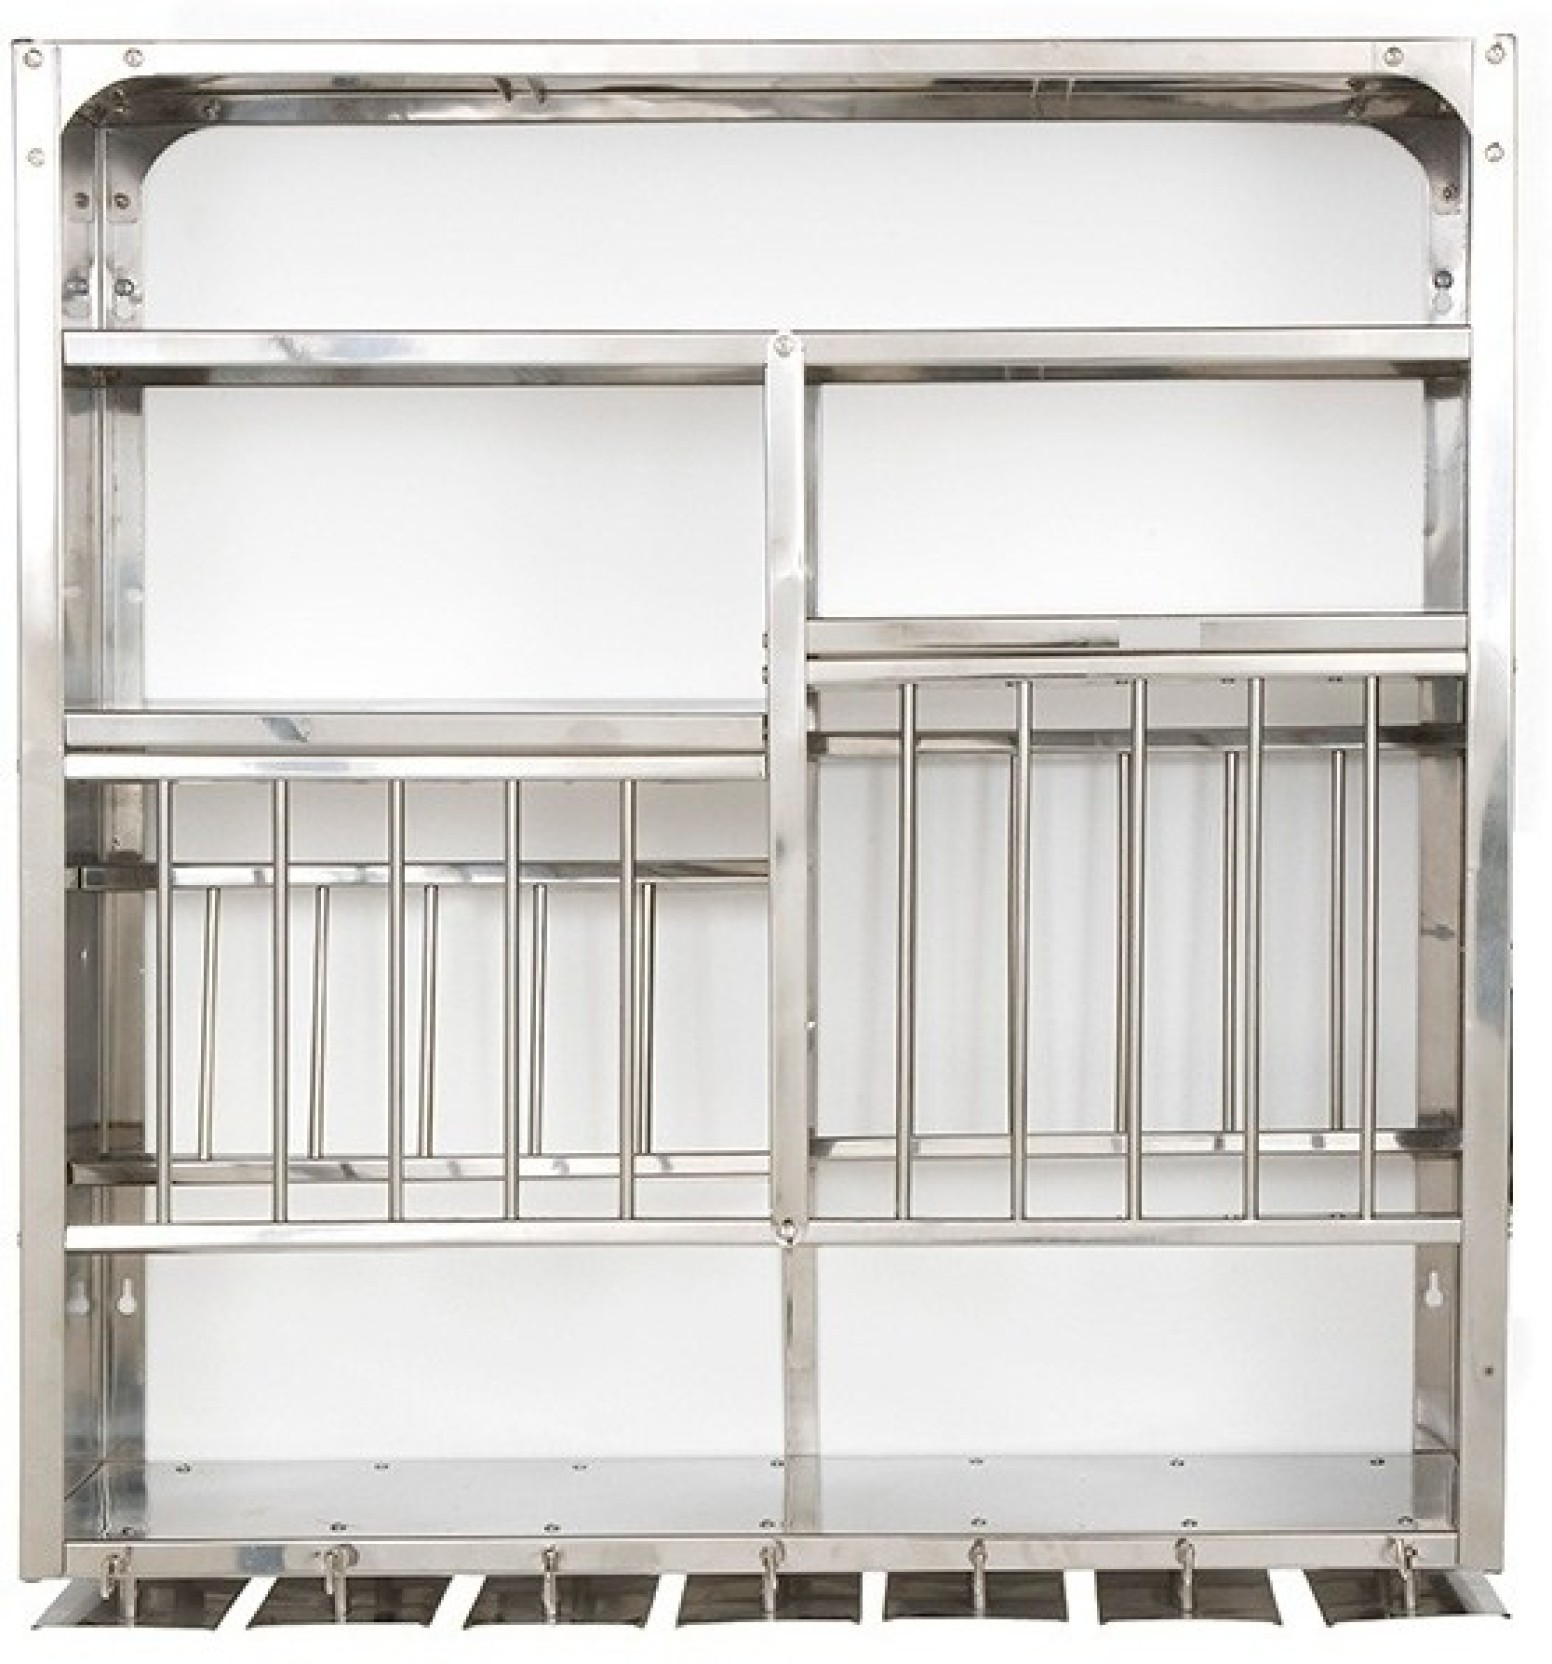 Bharat 30 X 30 Stainless Steel Kitchen Rack Price In India